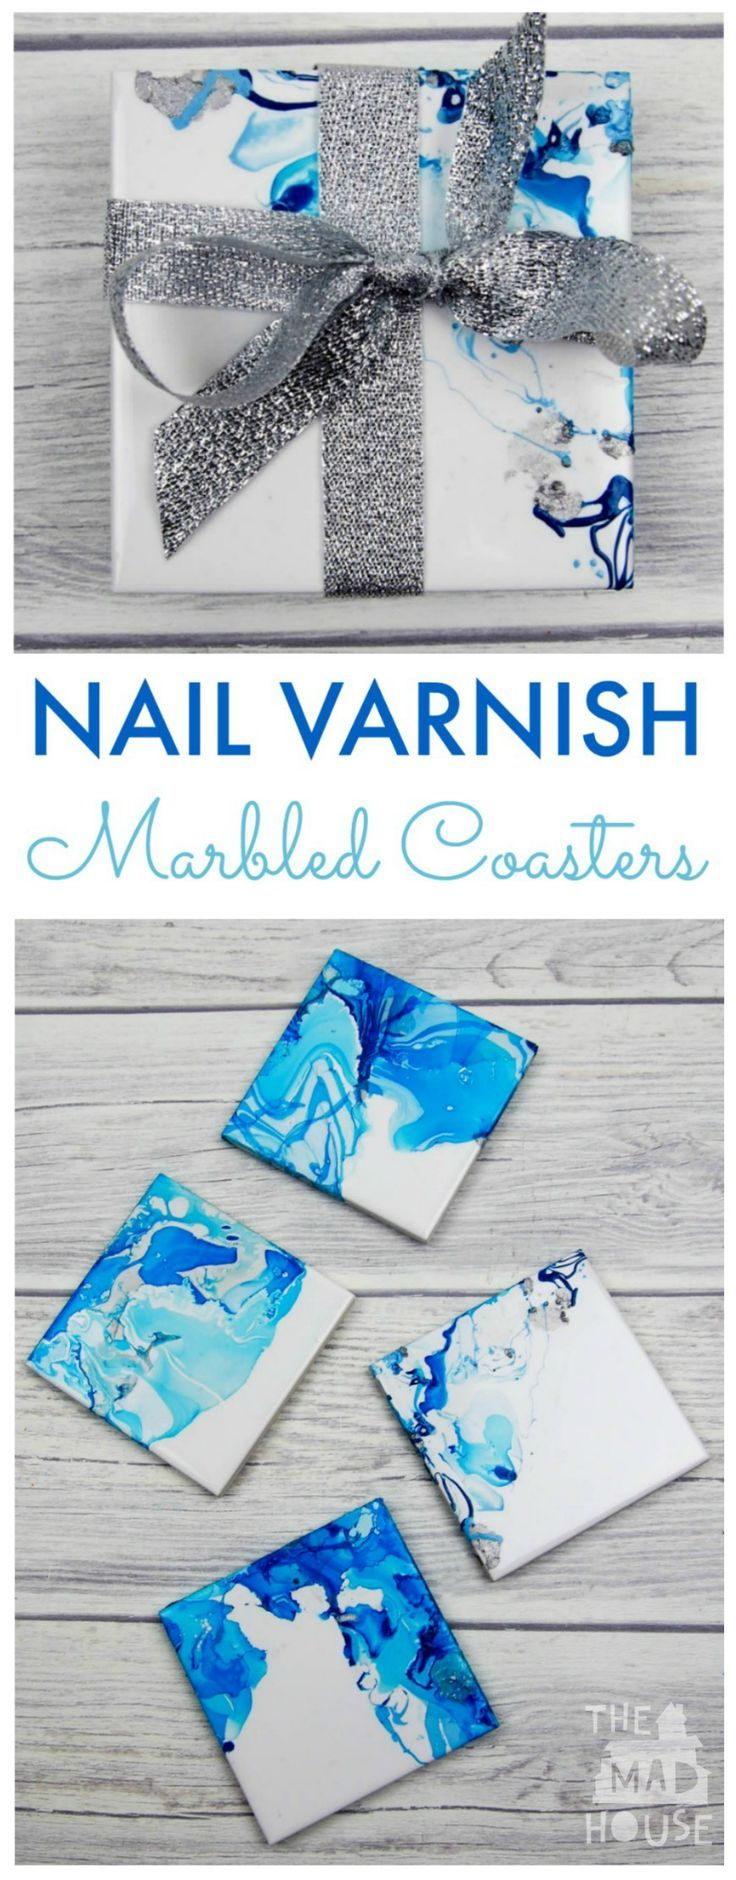 How to make Nail Varnish Marbled Coasters. These beautiful marbled coasters are beautiful as so simple to make. A great homemade gift and DIY craft #creativecoasters